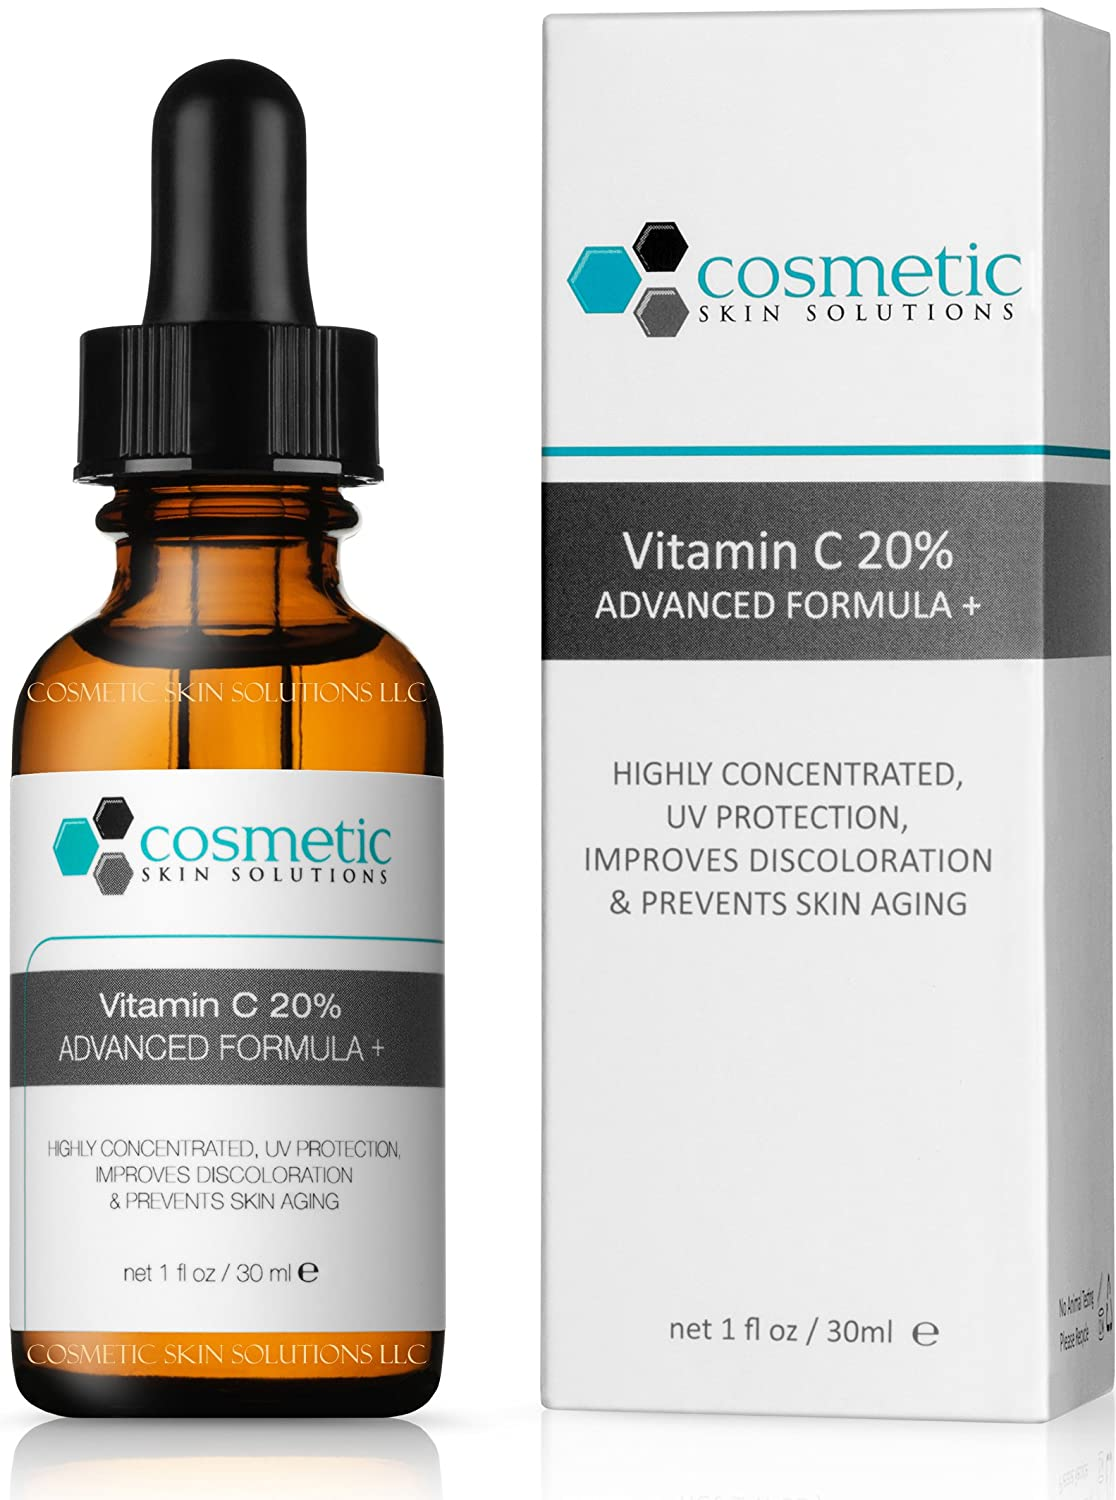 #1 BEST Vitamin C 20% Serum + Ferulic Acid & Hyaluronic Acid For Maximum Anti-Aging! 100% Safe & Effective! Highly Concentrated Solution To Repair, Protect, Prevent Skin Aging - 1 oz / 30 ml Cosmetic Skin Solutions LLC